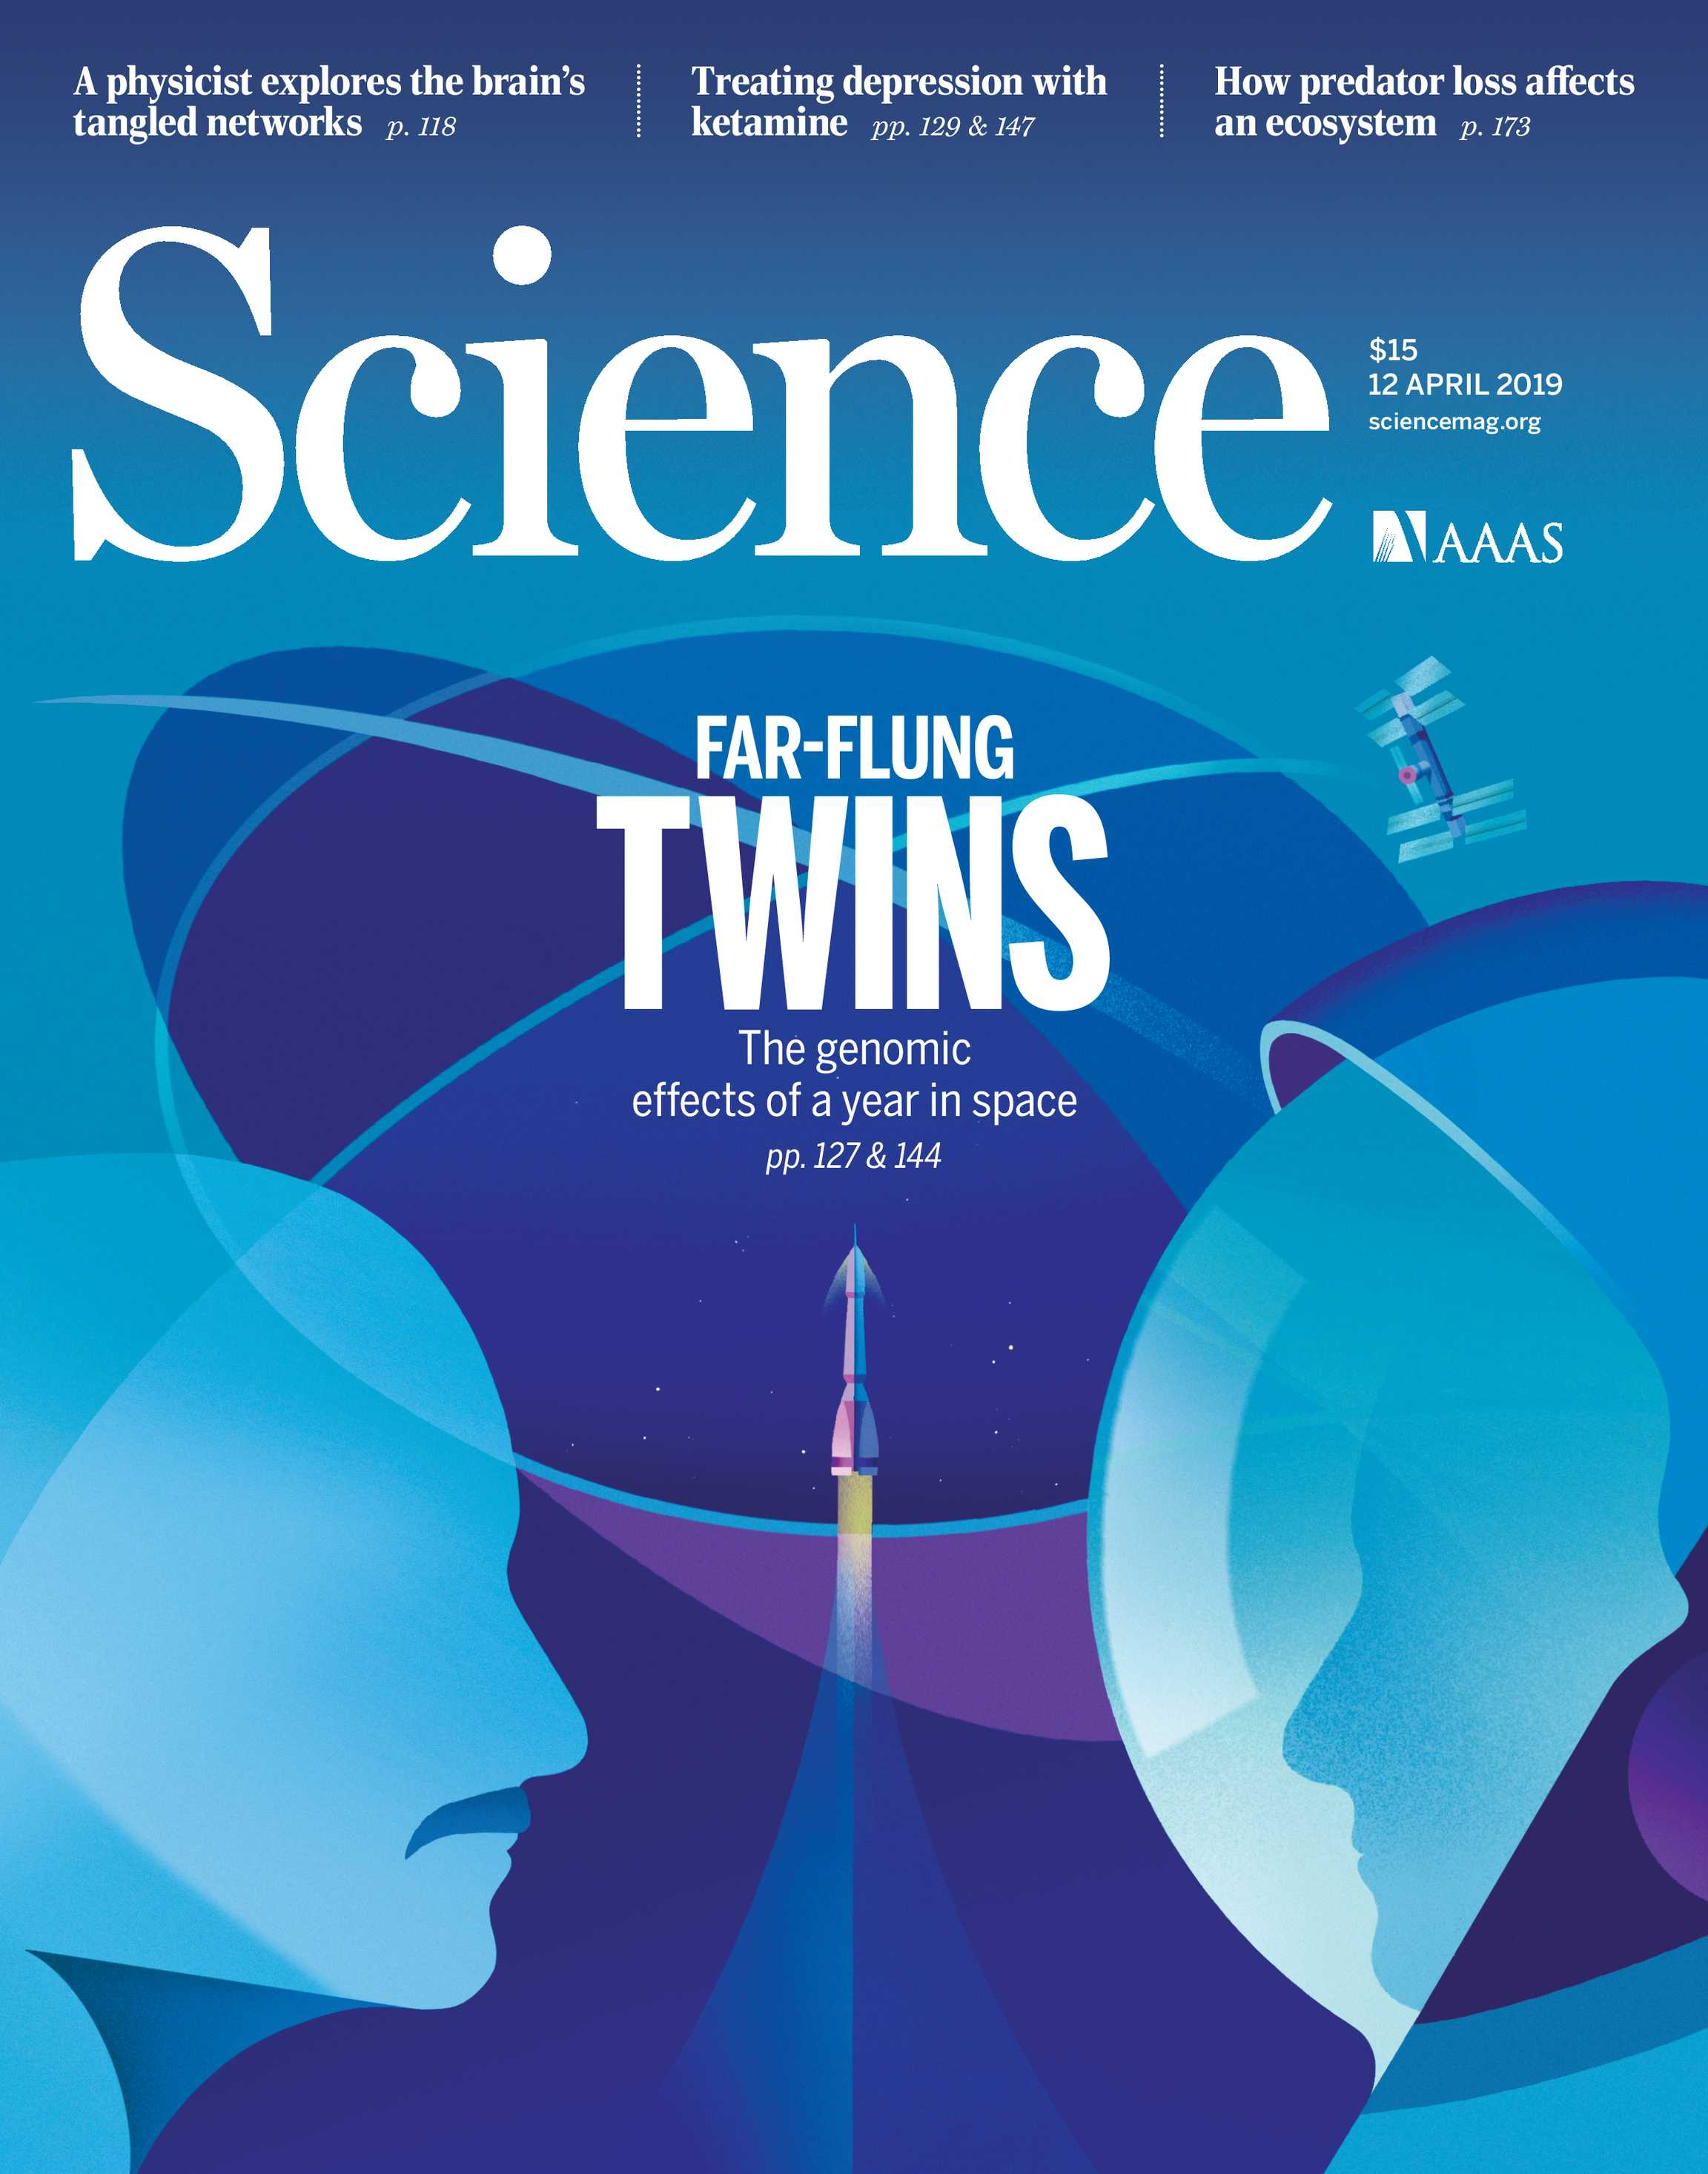 Science Magazine April 12 2019 Page Cover